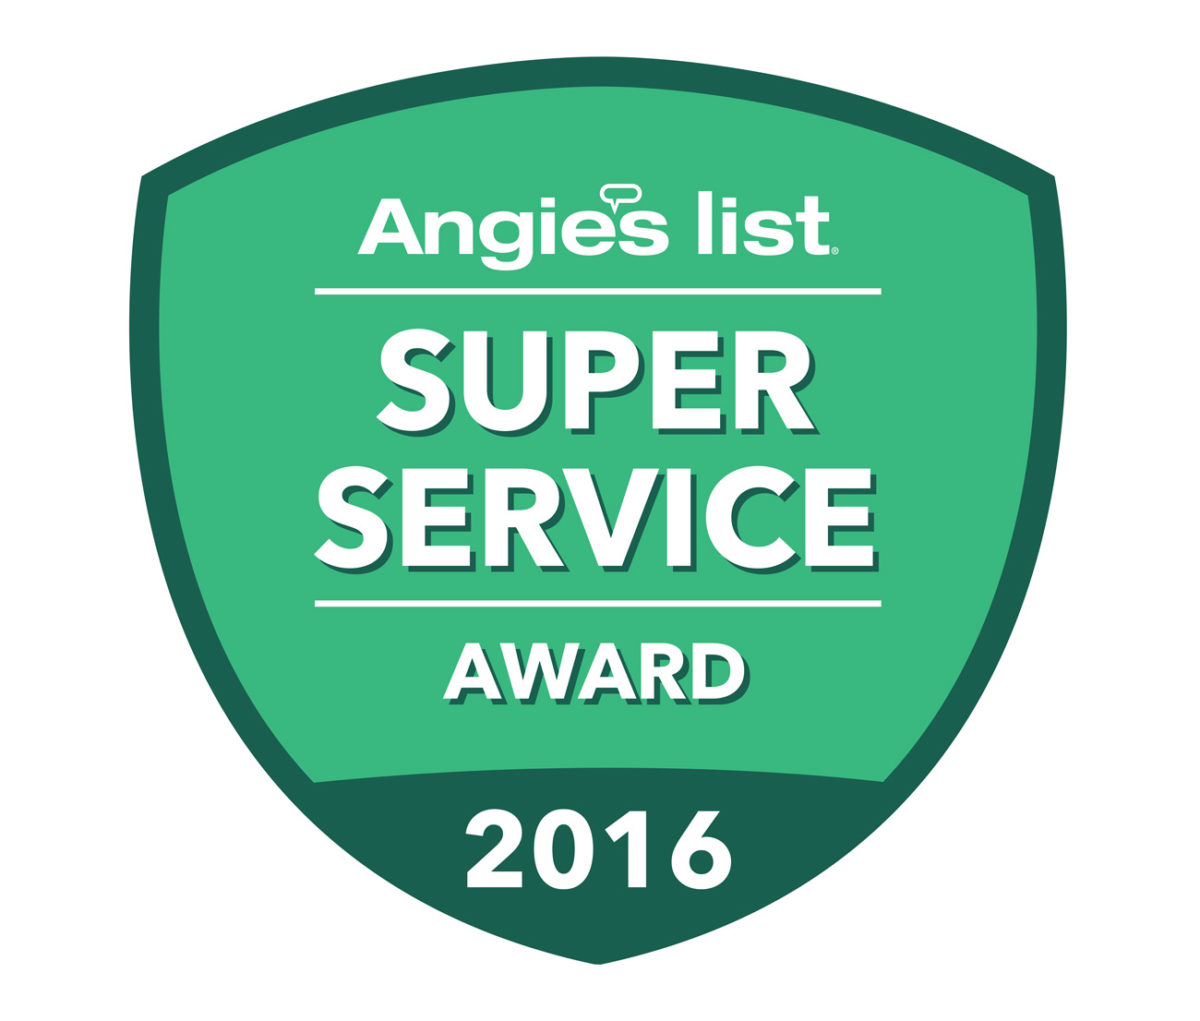 angles list super service award badge